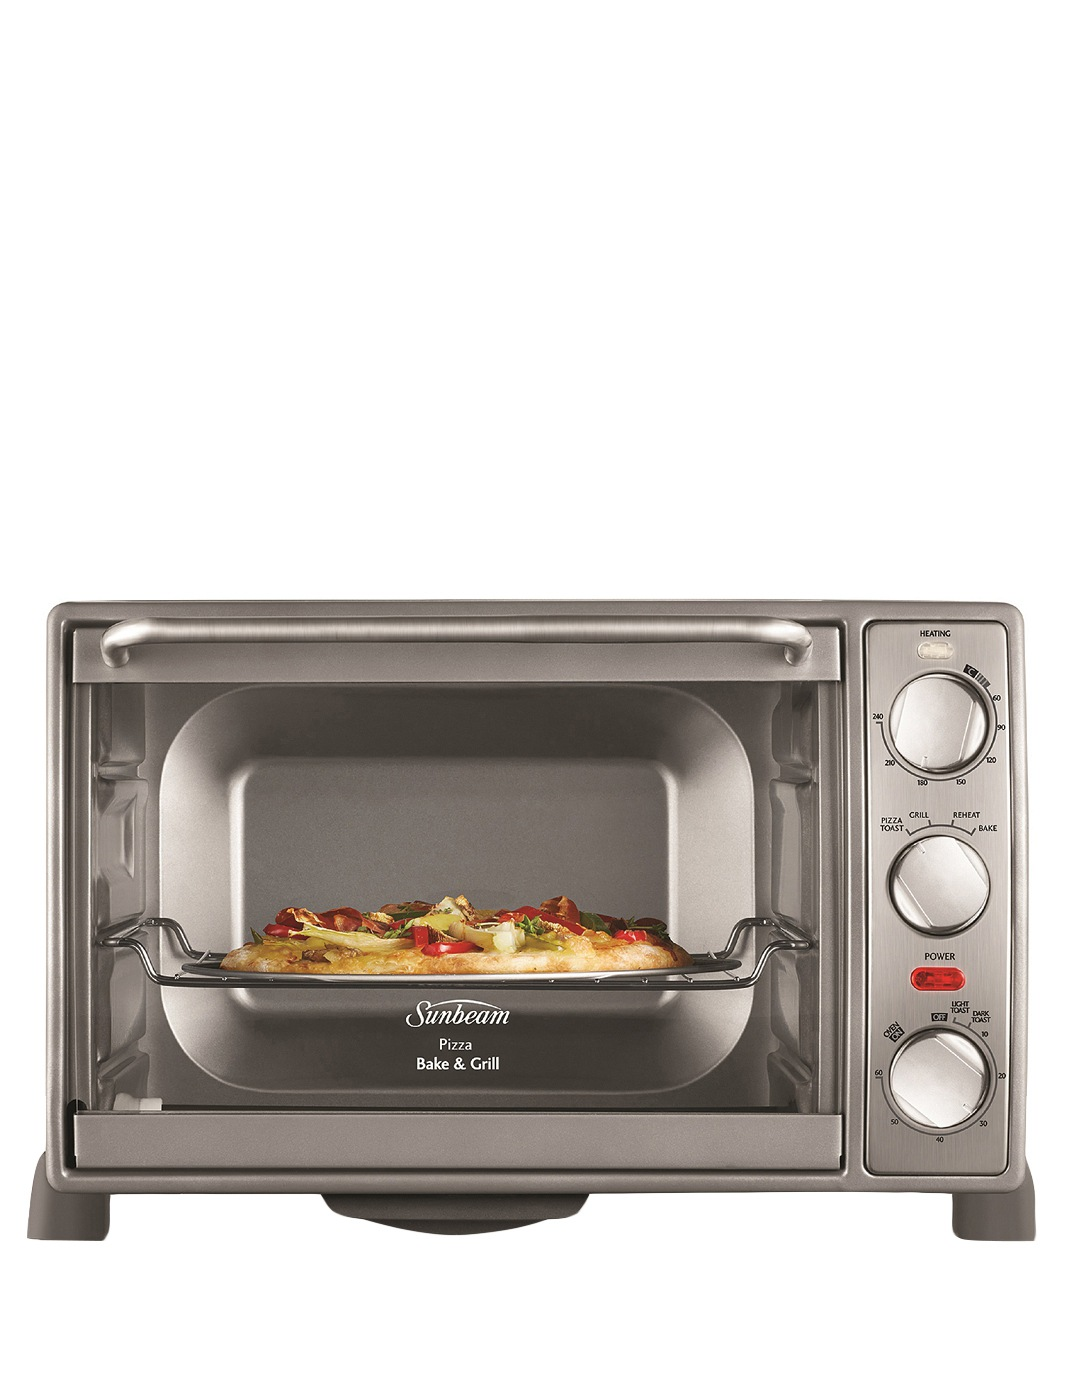 sunbeam pizza bake and grill manual